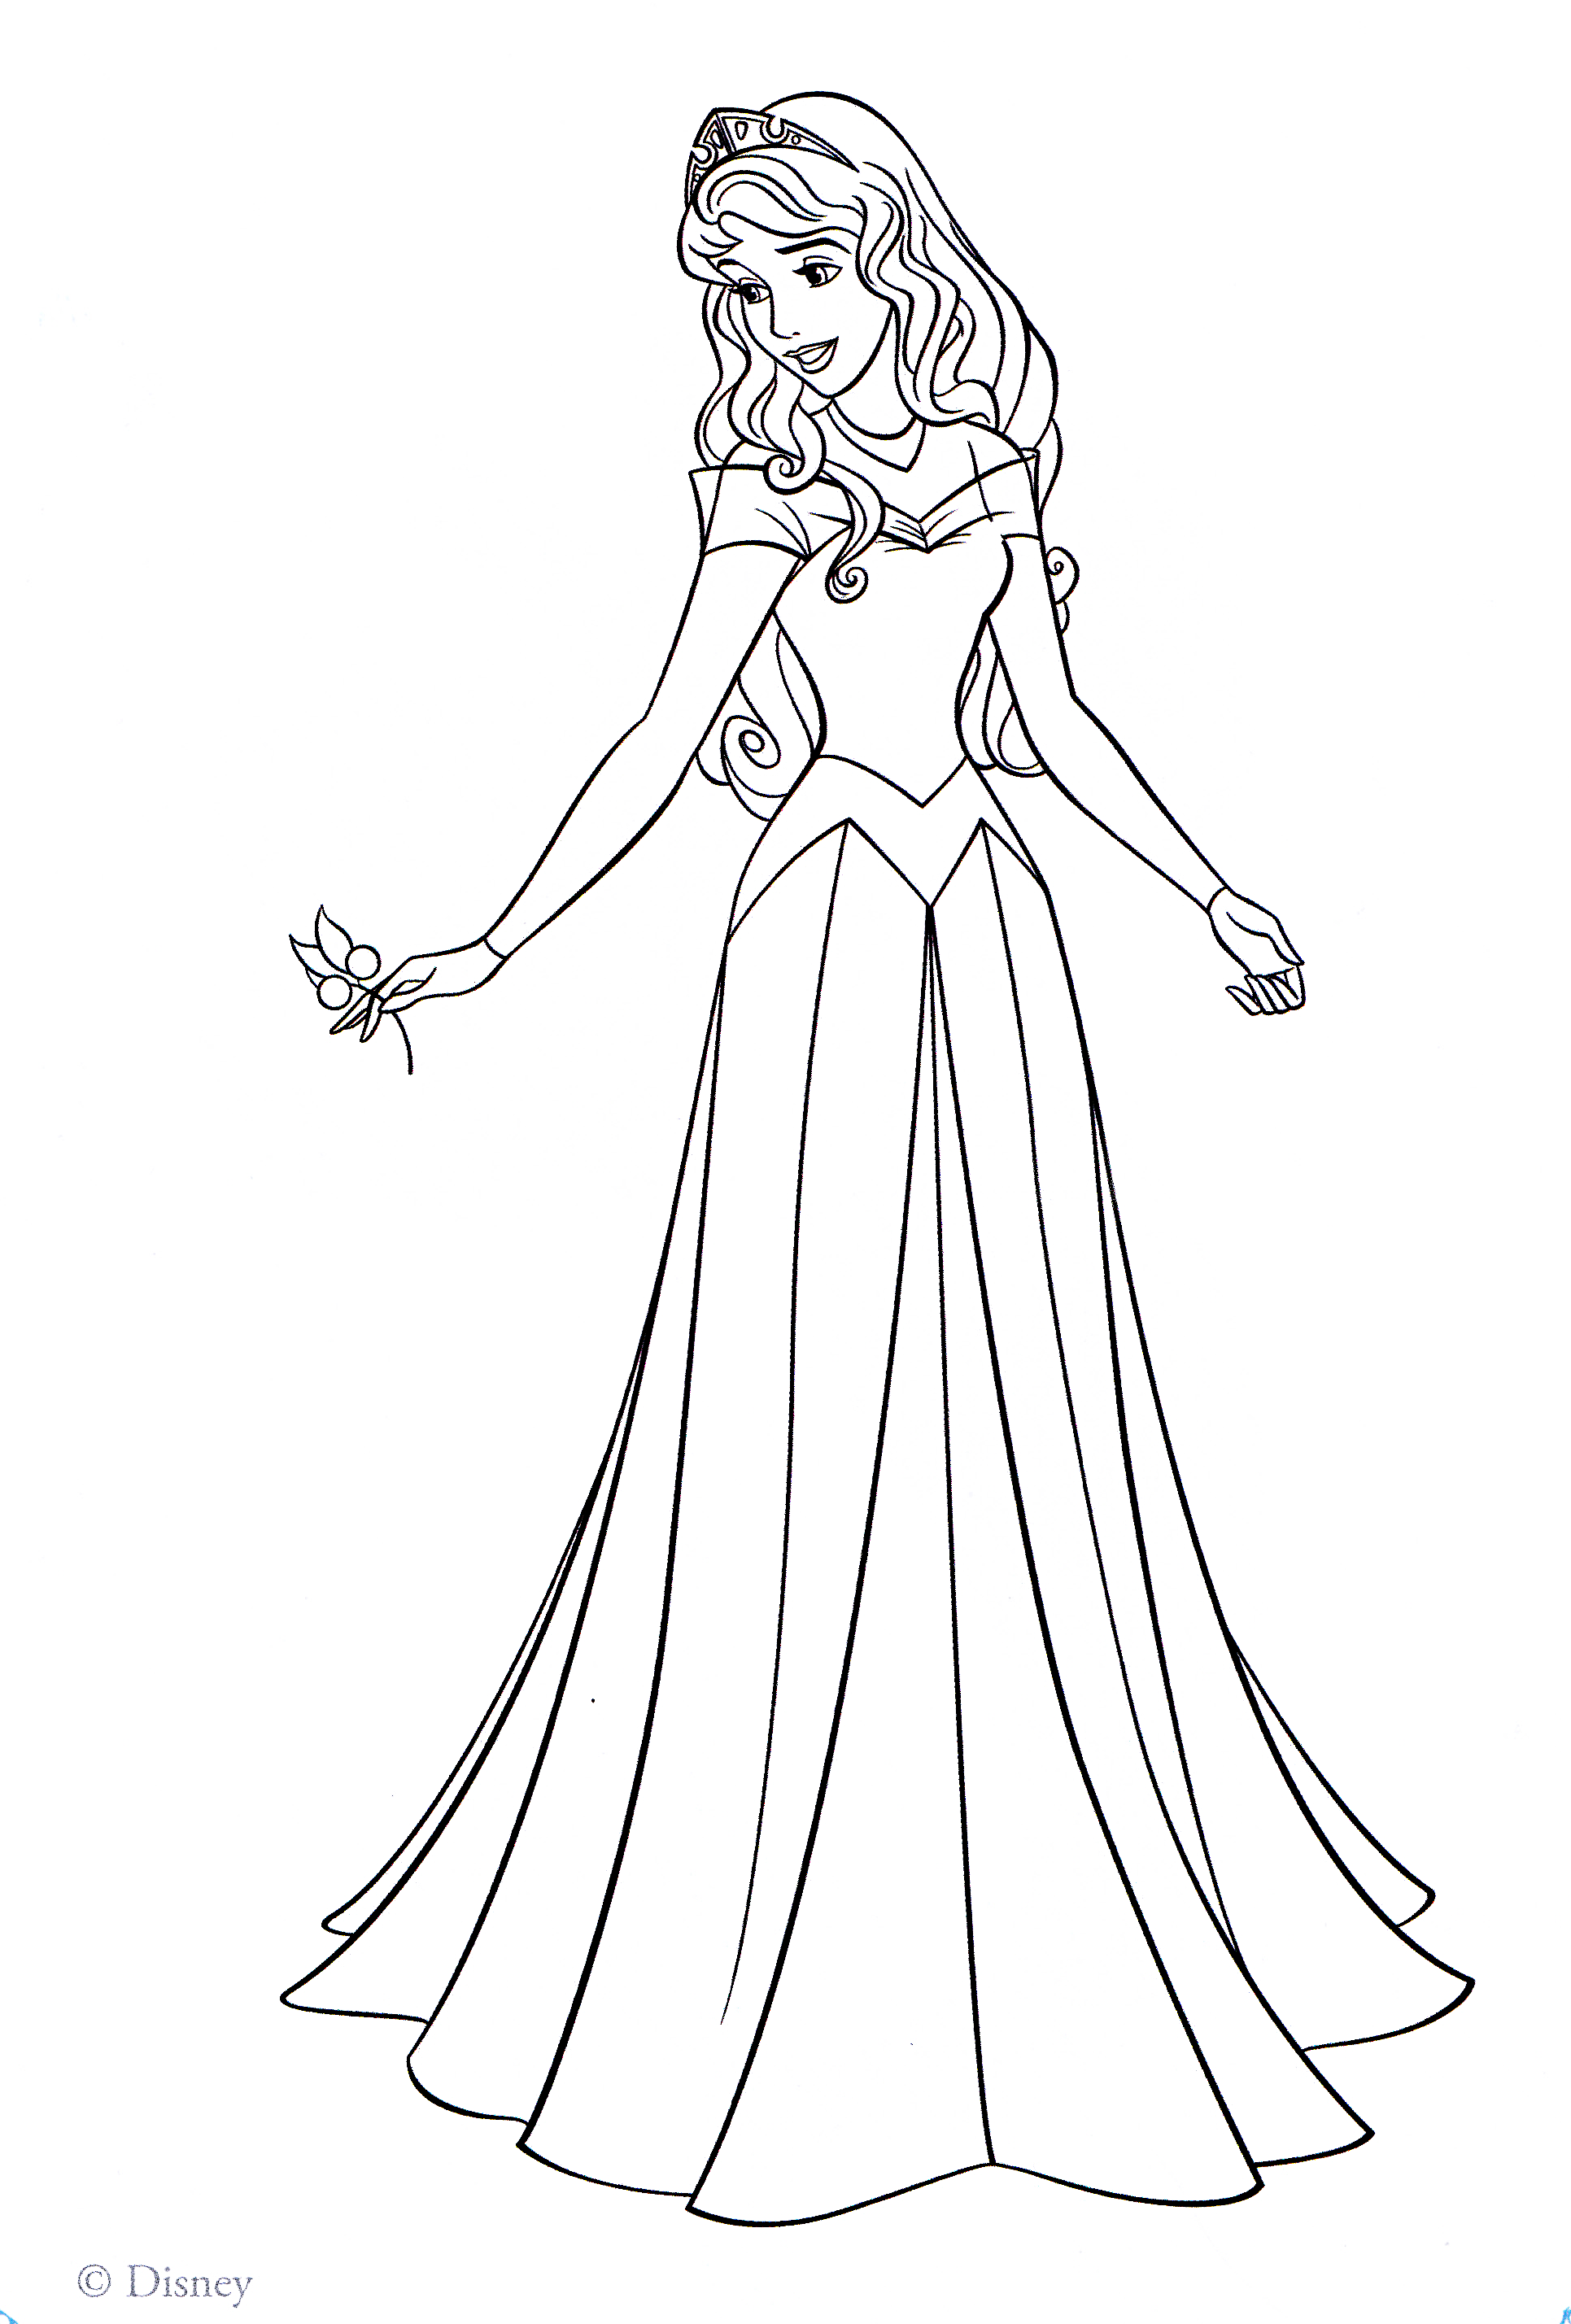 Princess Coloring Pages Spot : Aurora princess coloring pages az